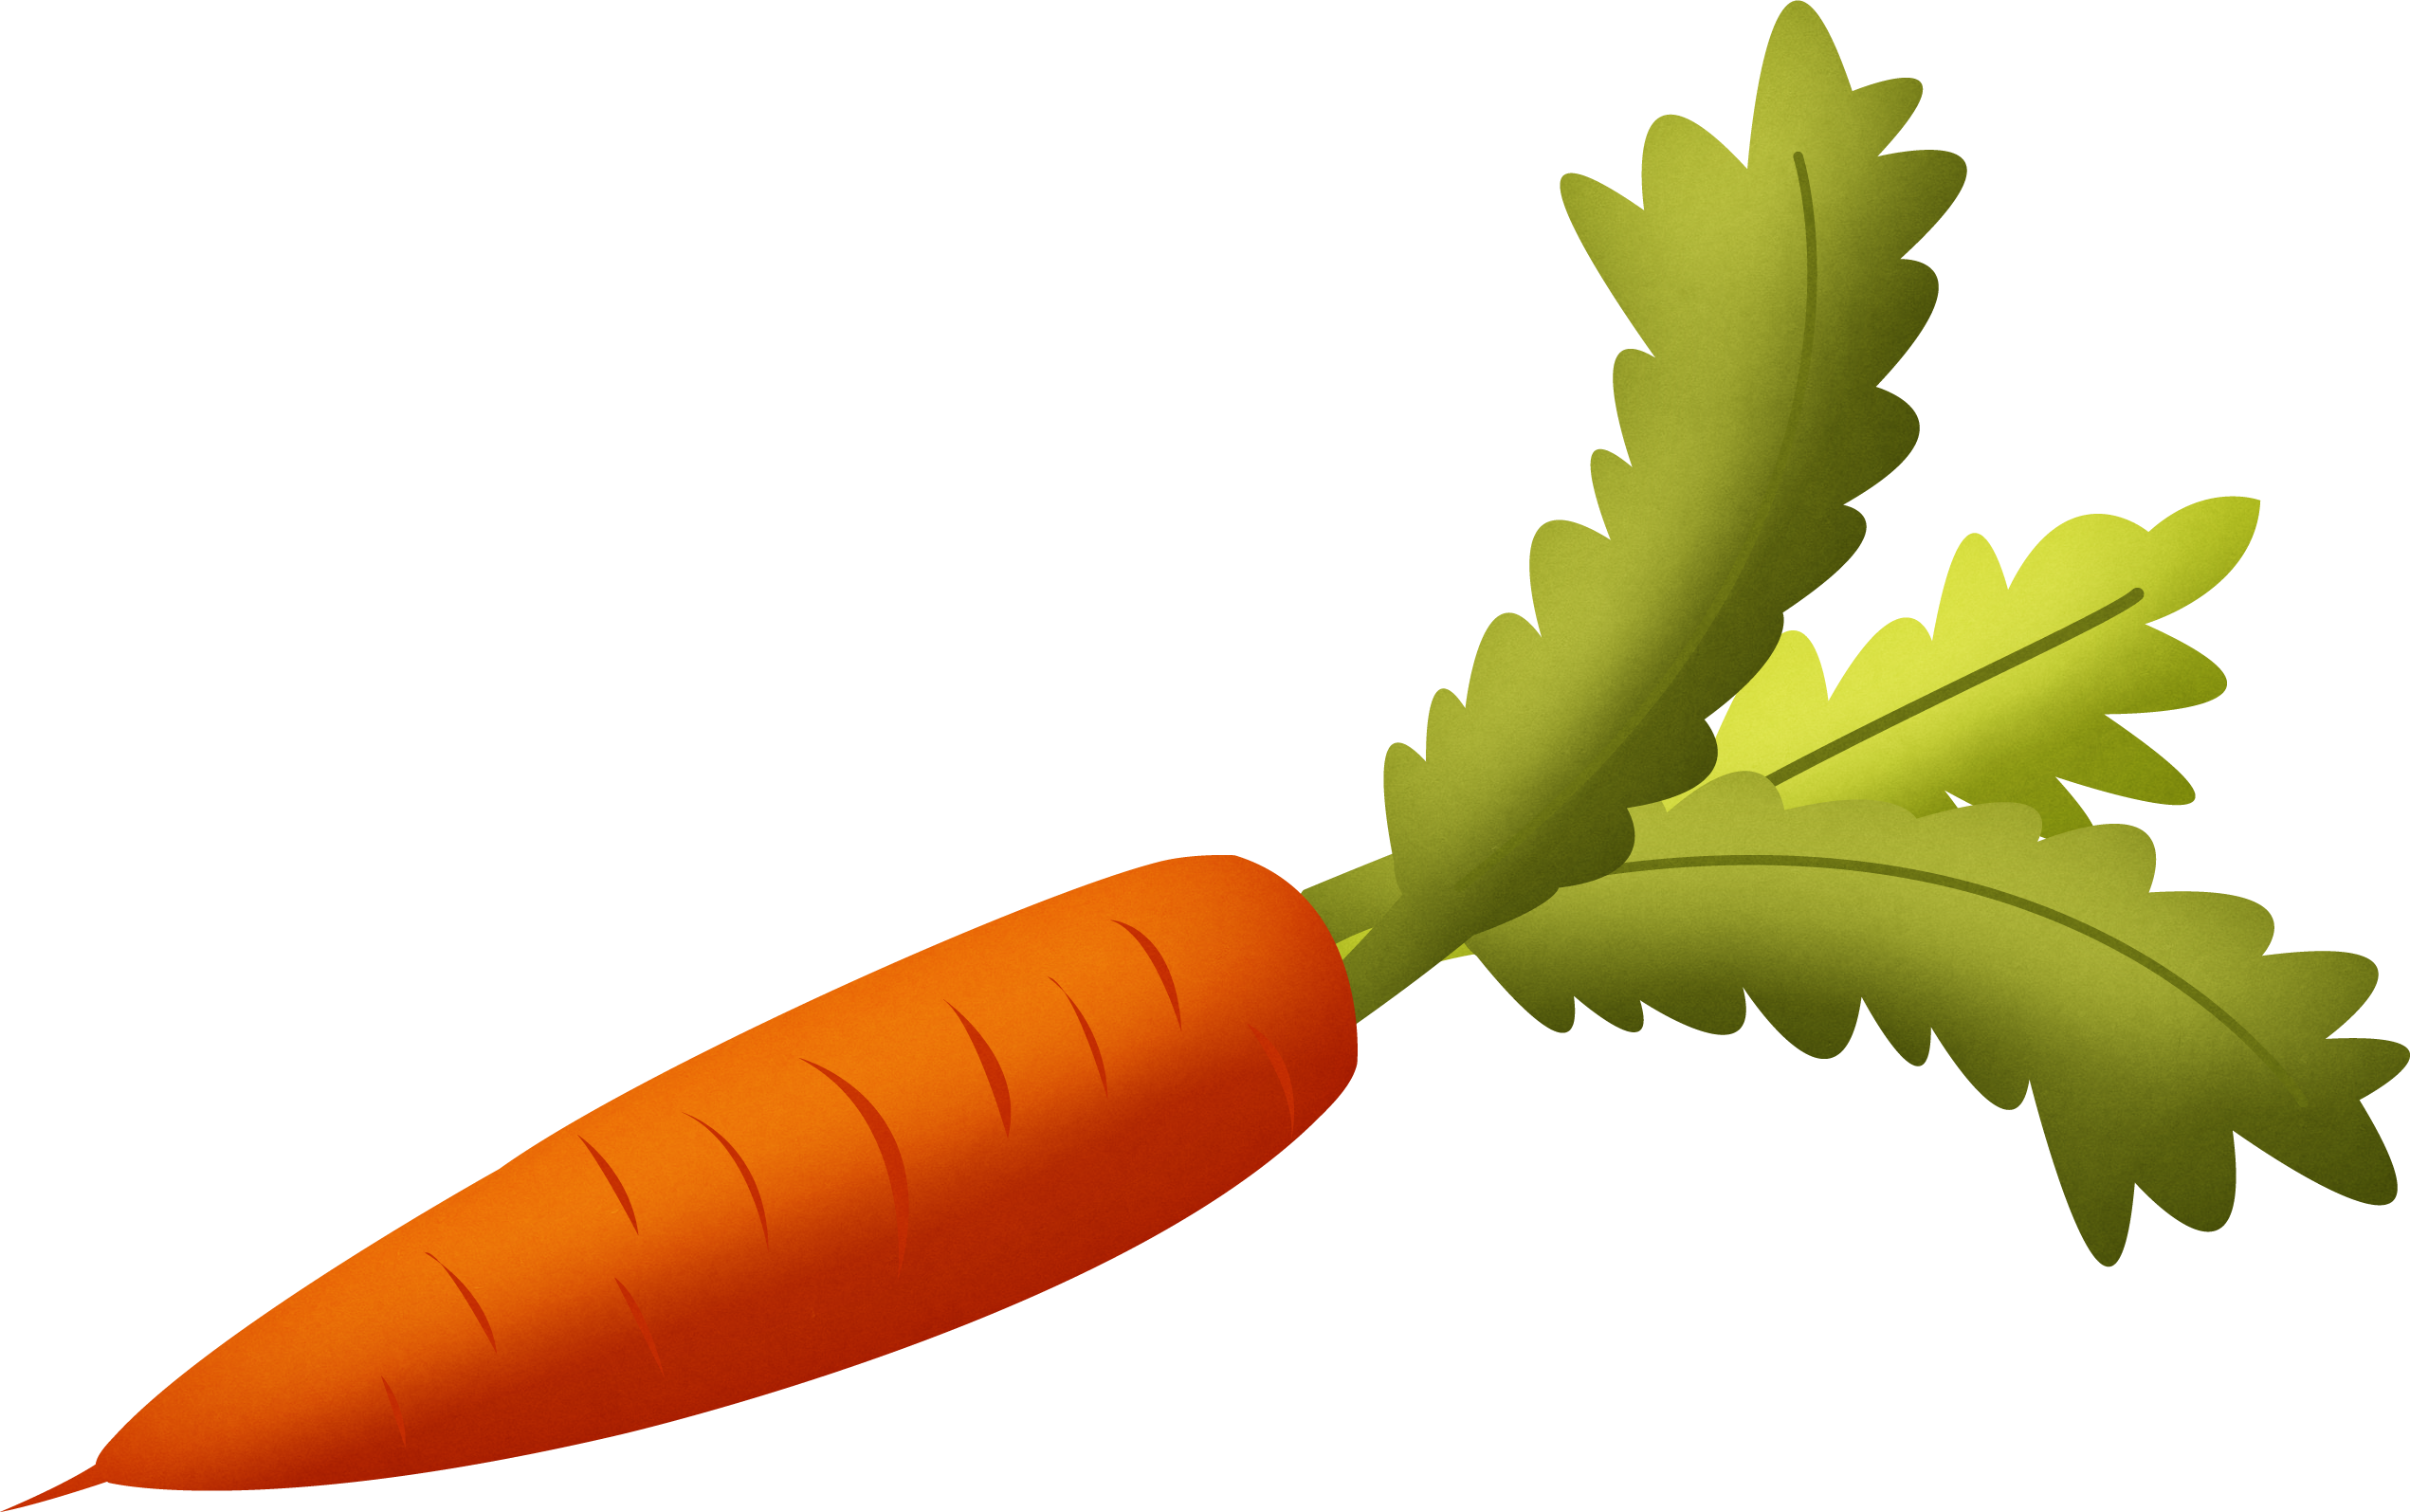 vector royalty free Vegetables clipart at getdrawings. Vector carrot transparent